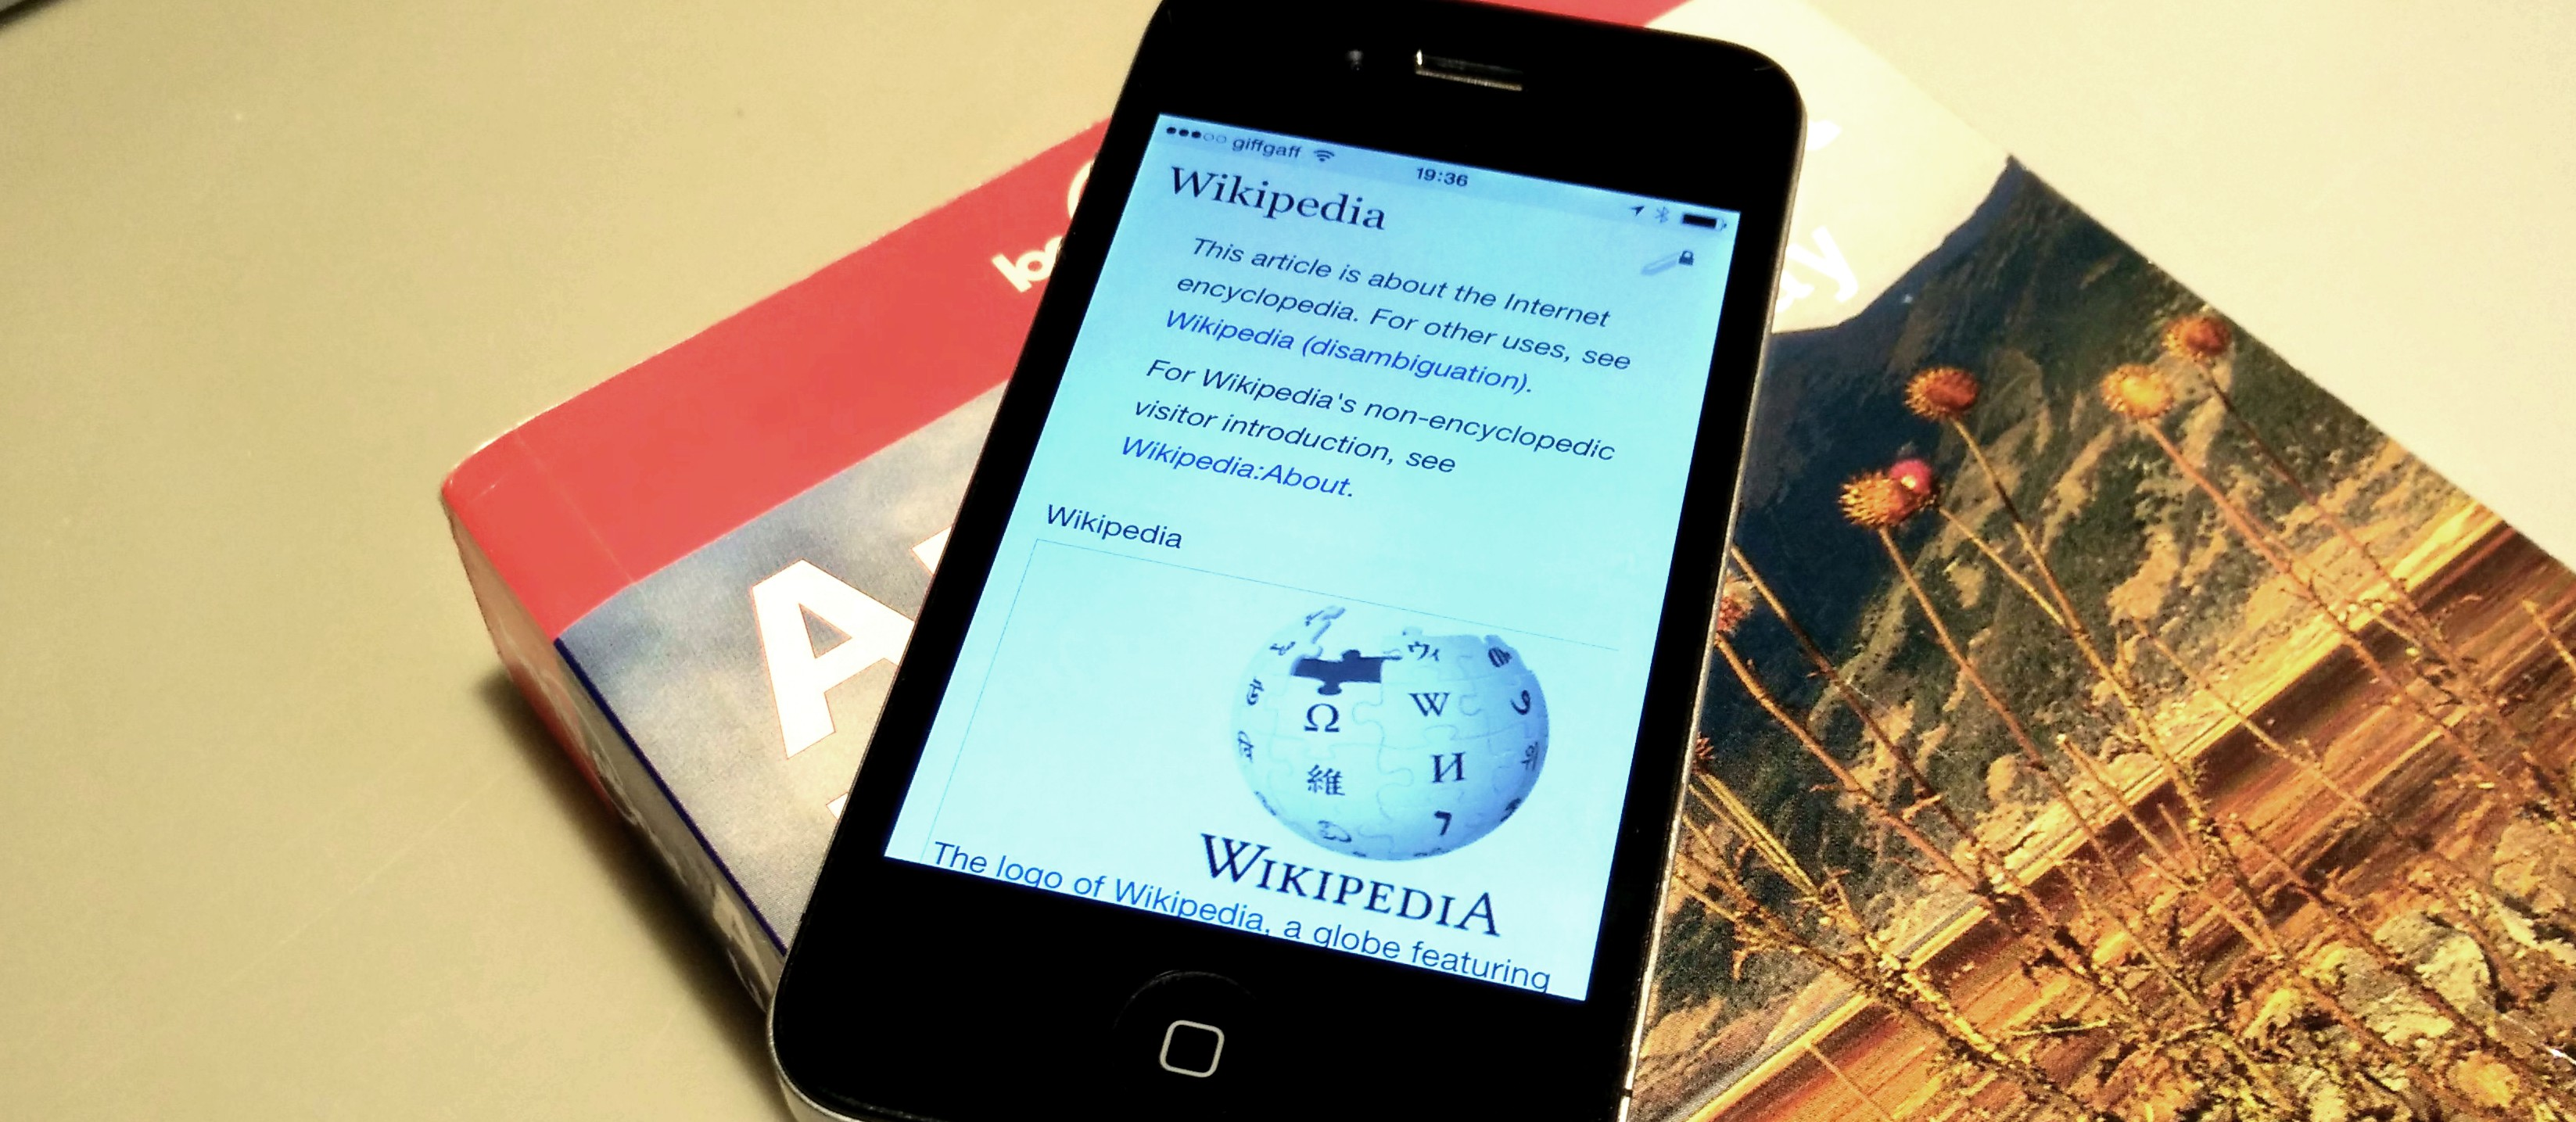 Wikipedia Combats Paid-For Editing With Cybersquatting Rules